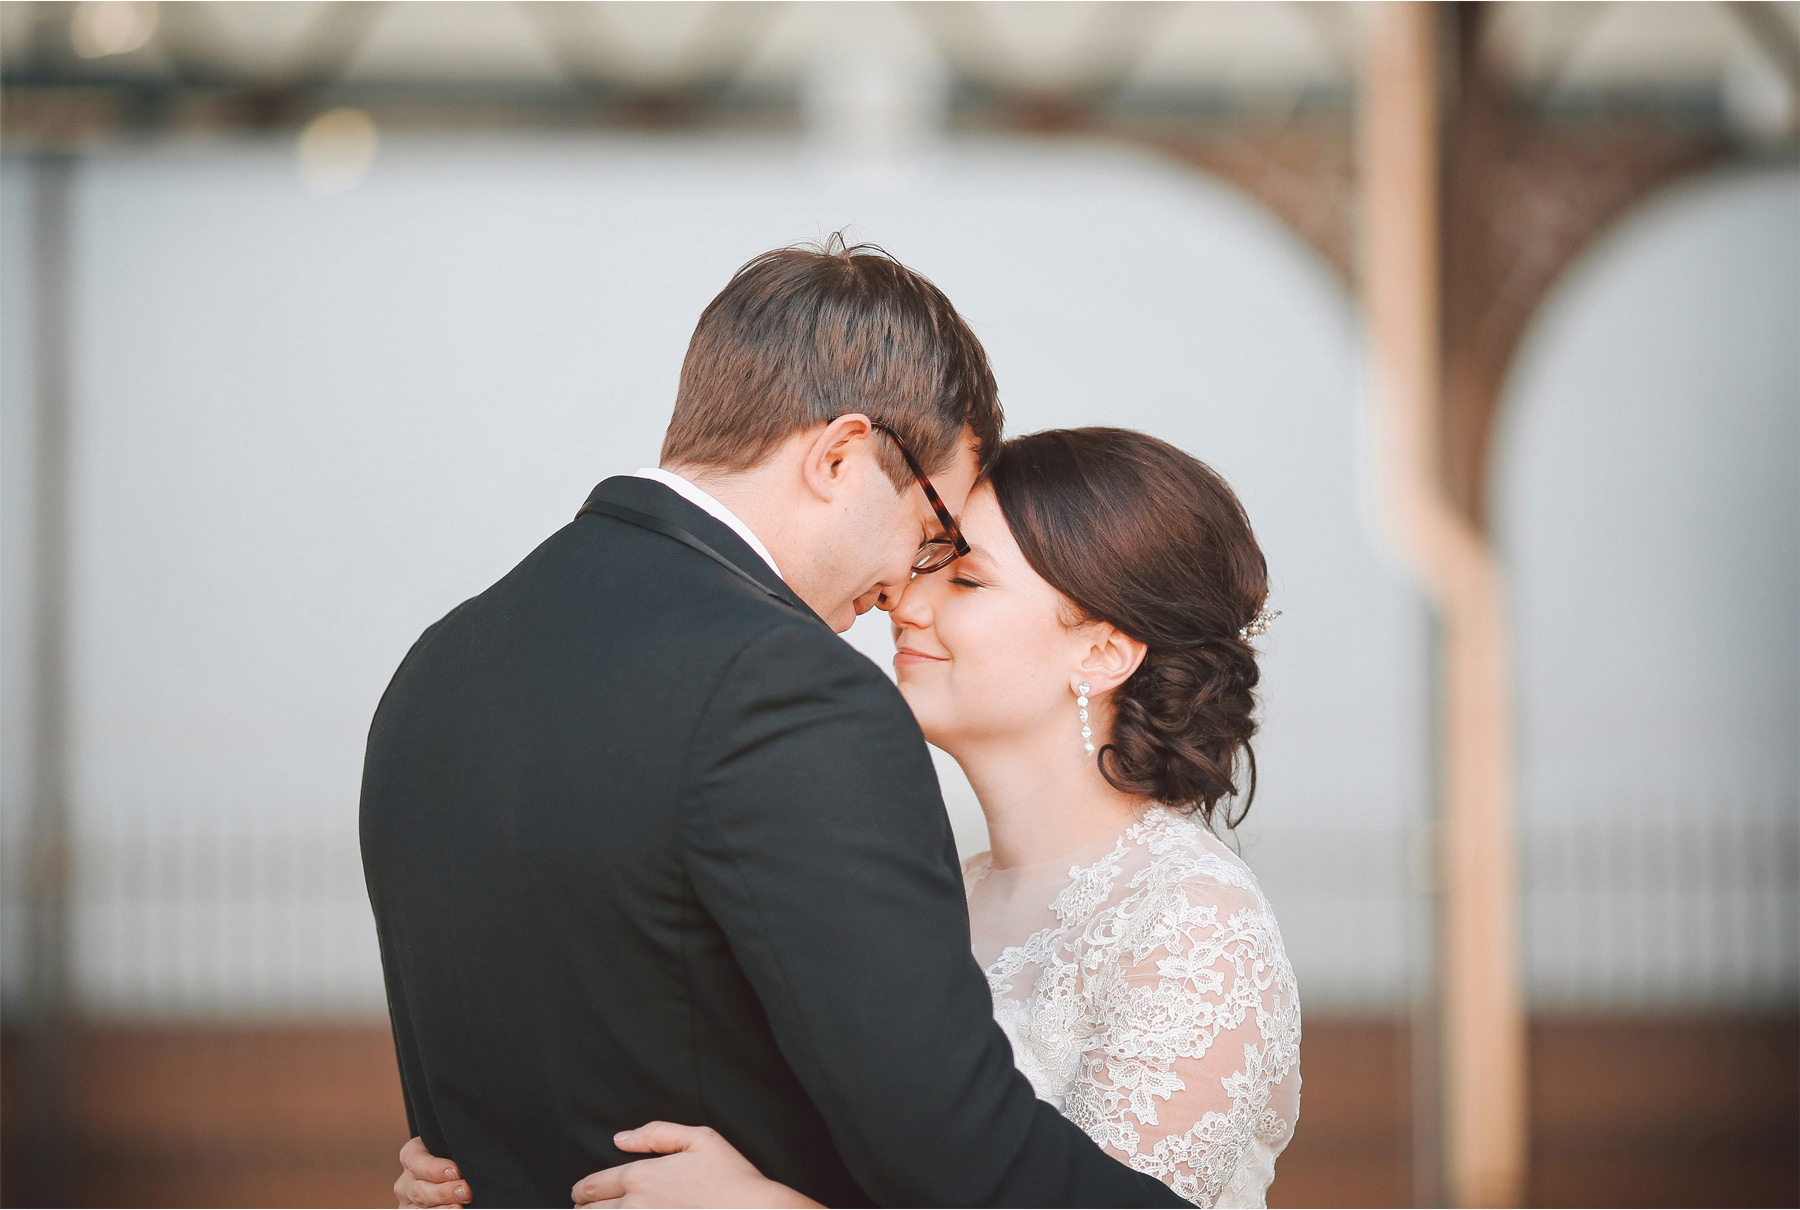 05-Minneapolis-Minnesota-Wedding-Photographer-by-Andrew-Vick-Photography-Winter-Renaissance-Hotel-First-Meeting-Look-Bride-Groom-Depot-Embrace-Vintage-Sara-and-Rob.jpg